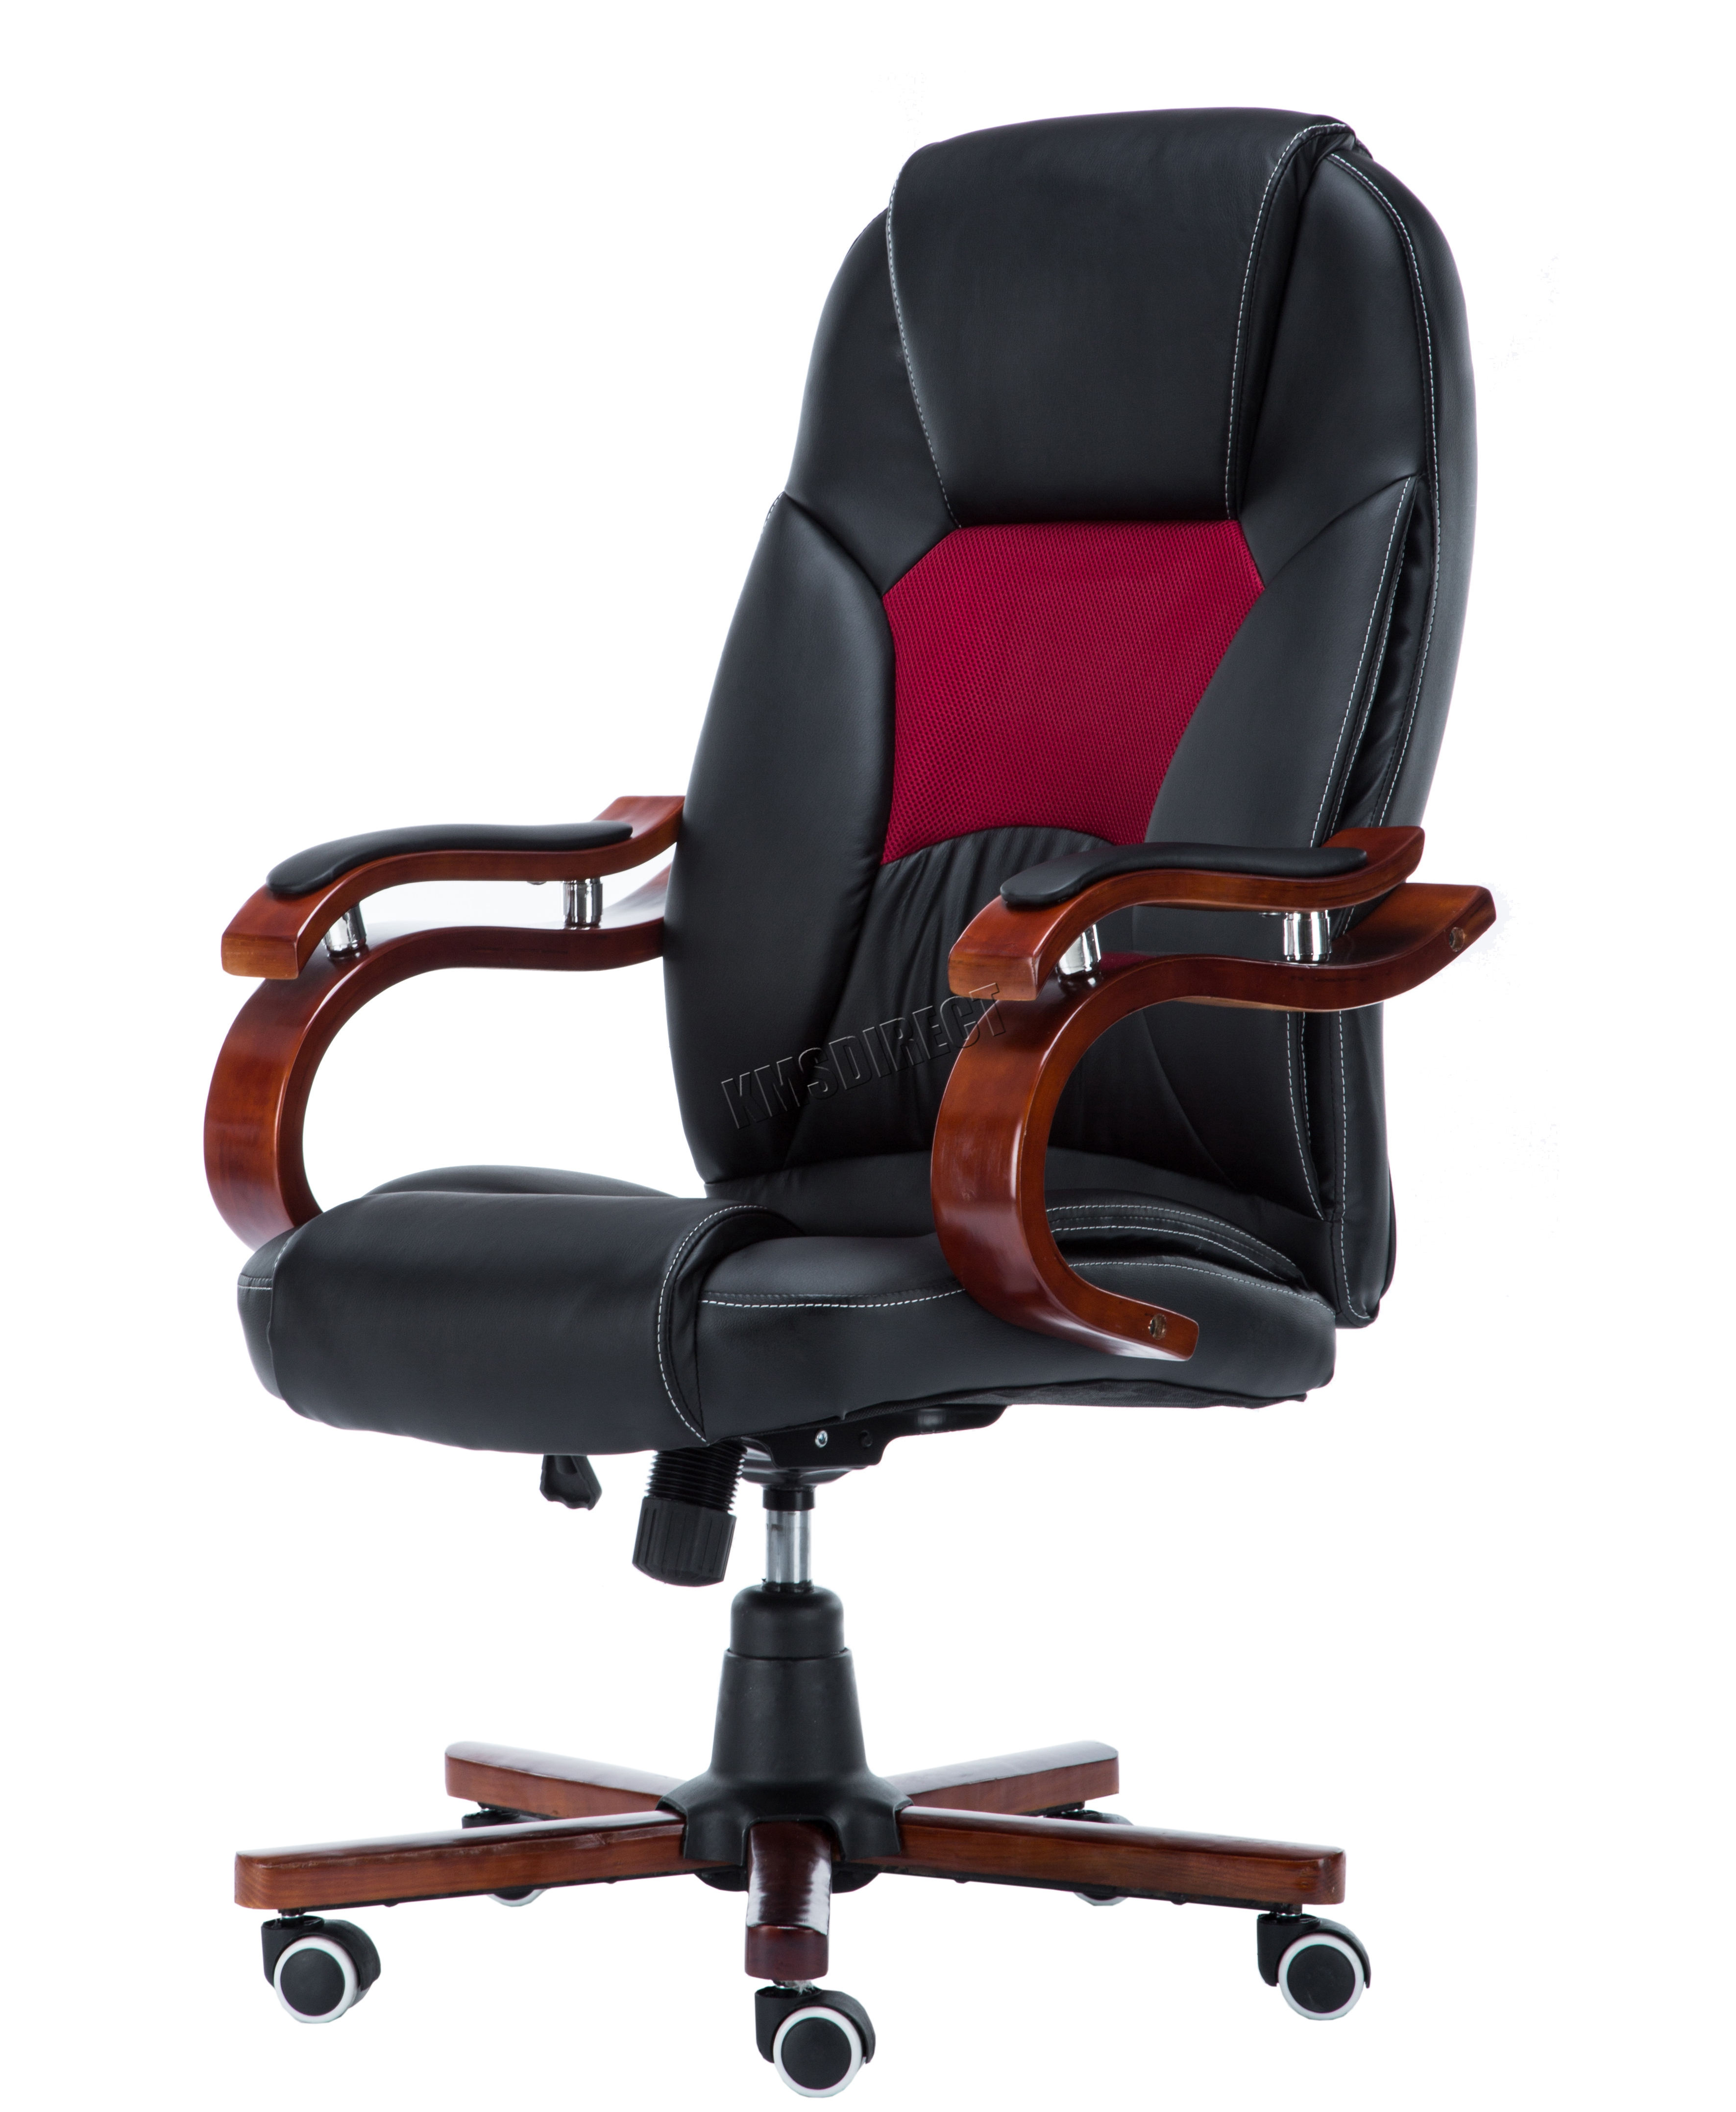 swivel chair office warehouse lift for stairs india westwood computer executive pu leather